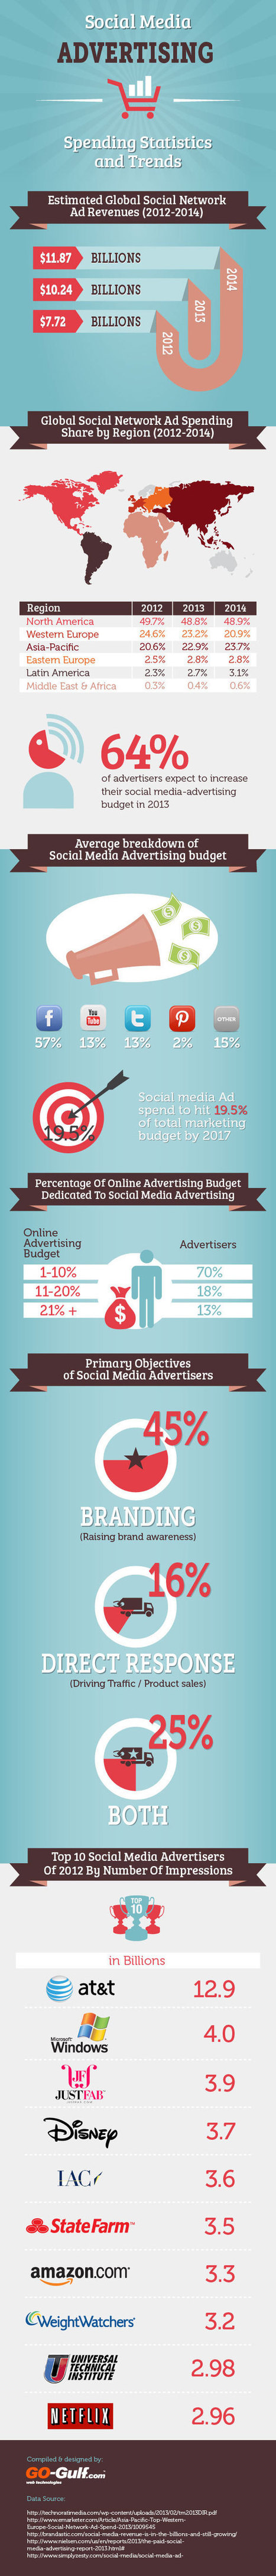 Social media advertising [infographic] | It's business, my dear! | Scoop.it